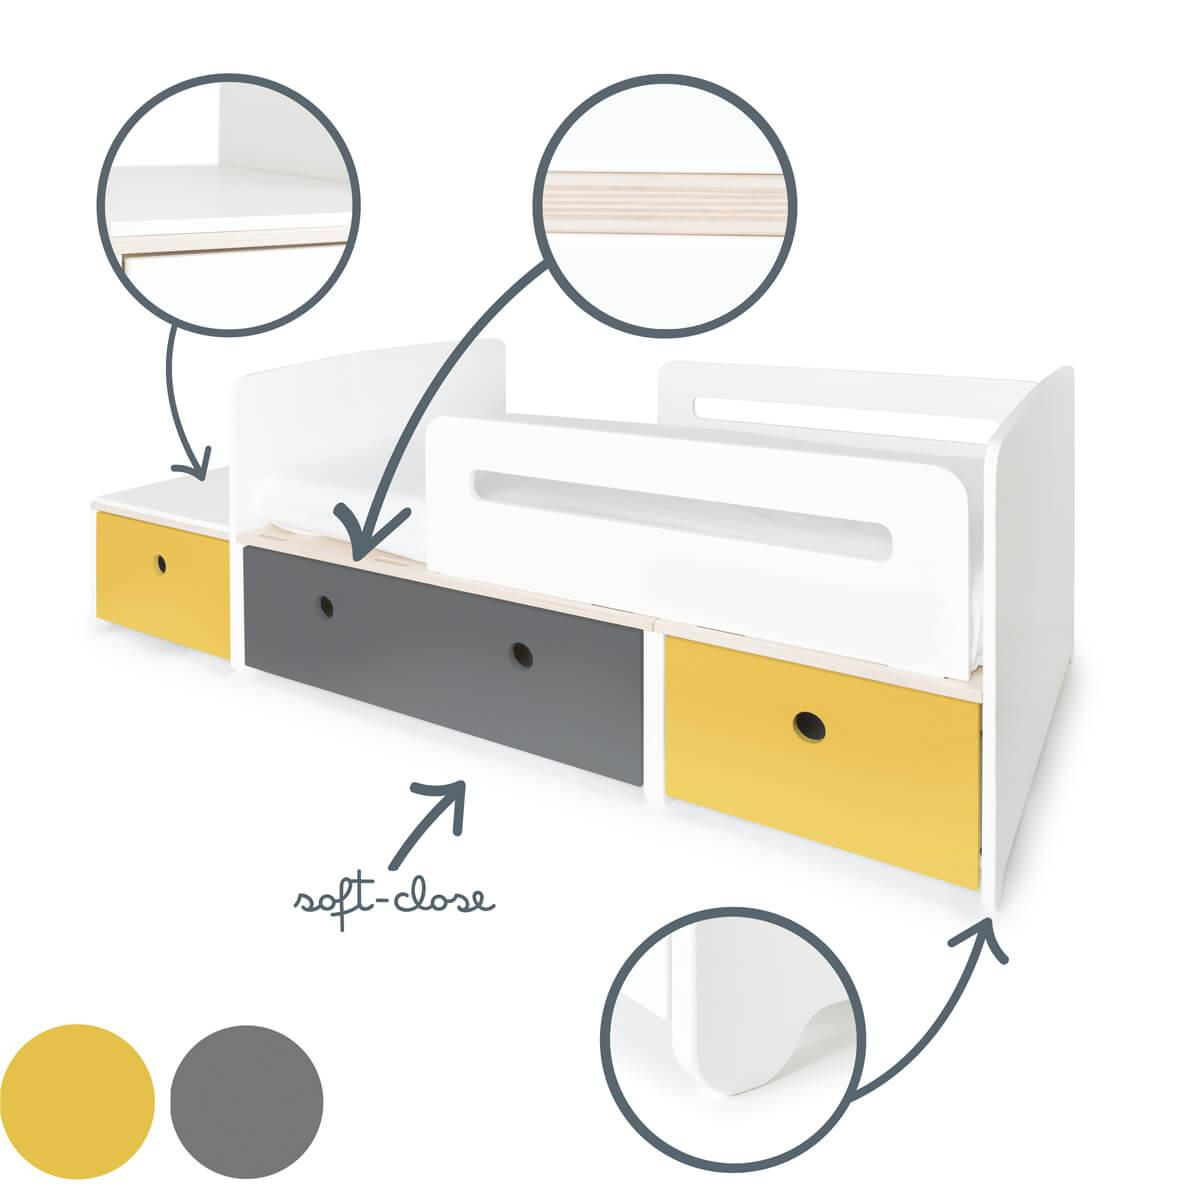 Lit junior évolutif 90x150/200cm COLORFLEX Abitare Kids nectar yellow-space grey-nectar yellow